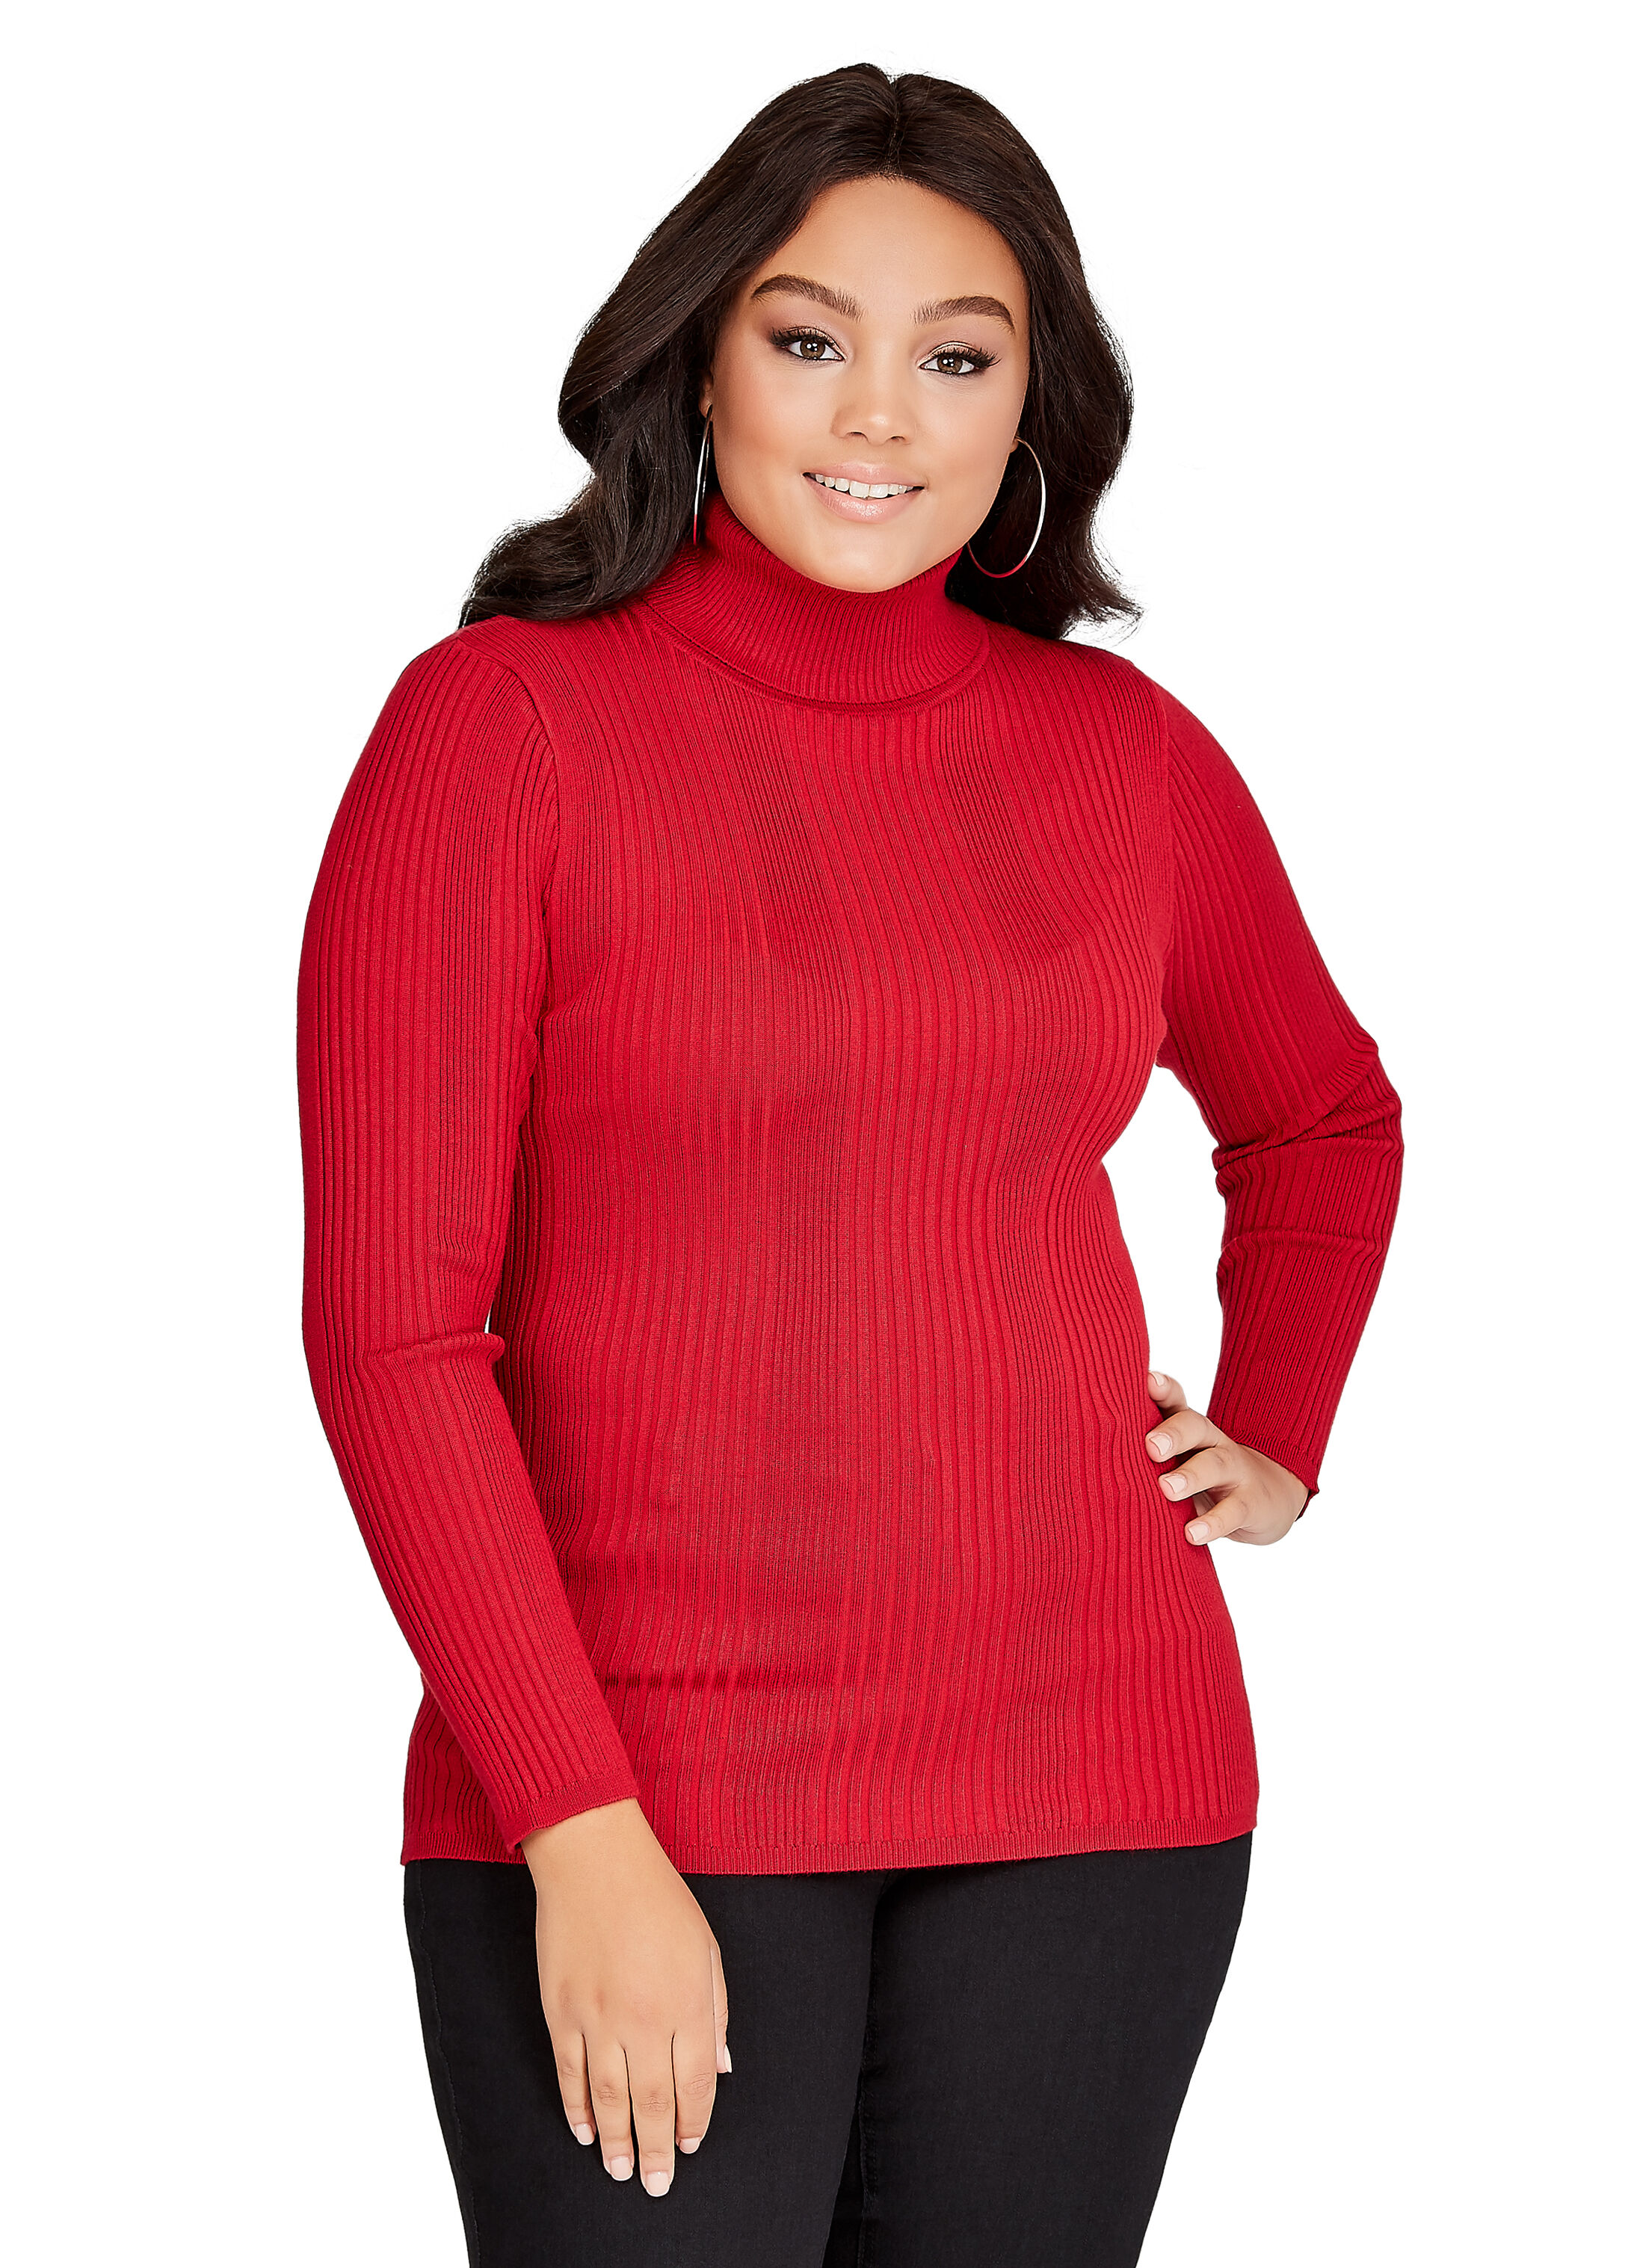 Plus Size Sweater - Basic Turtleneck